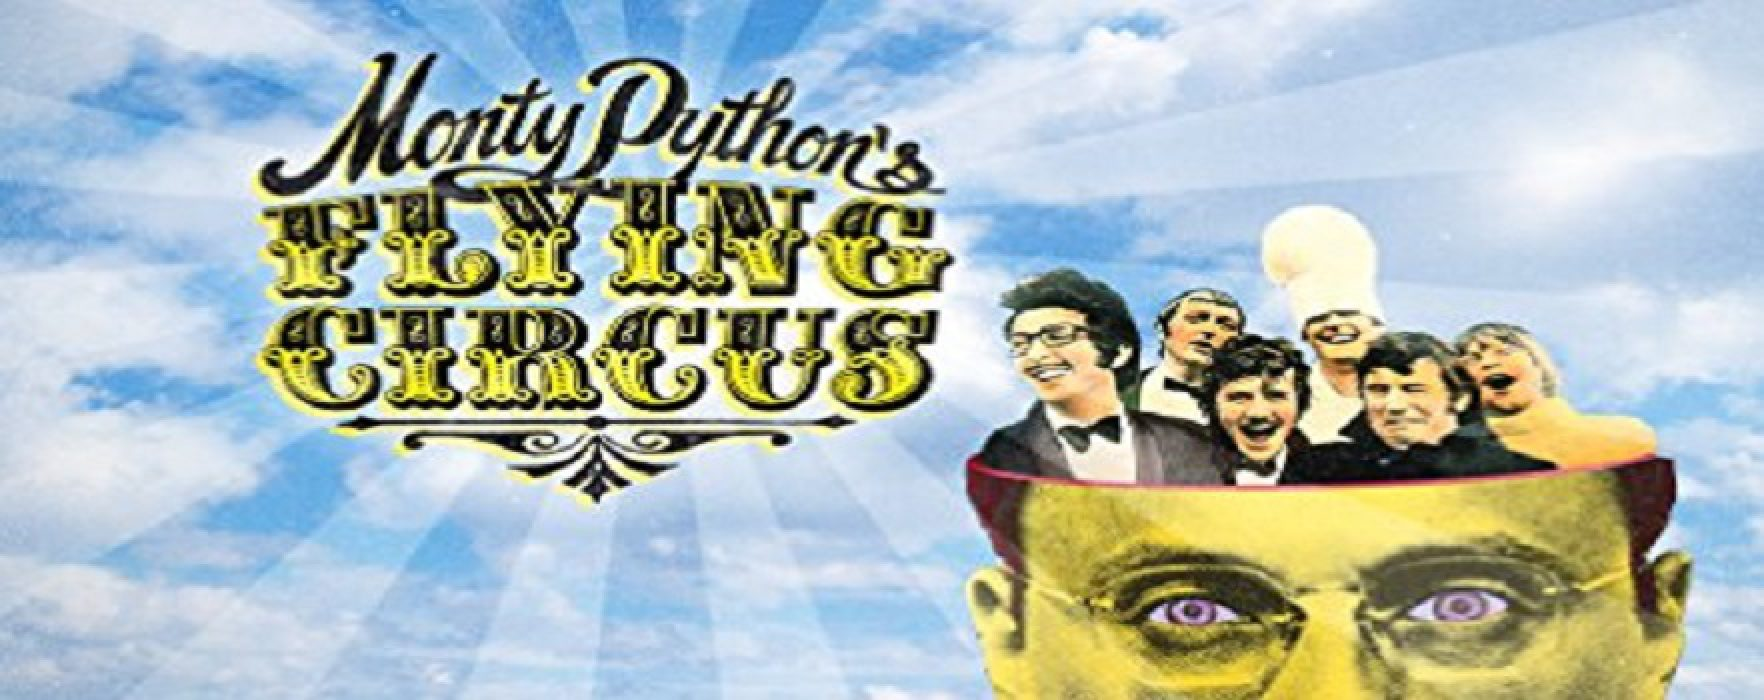 Monty Python's Coming to Netflix, Crunchy Frogs and All